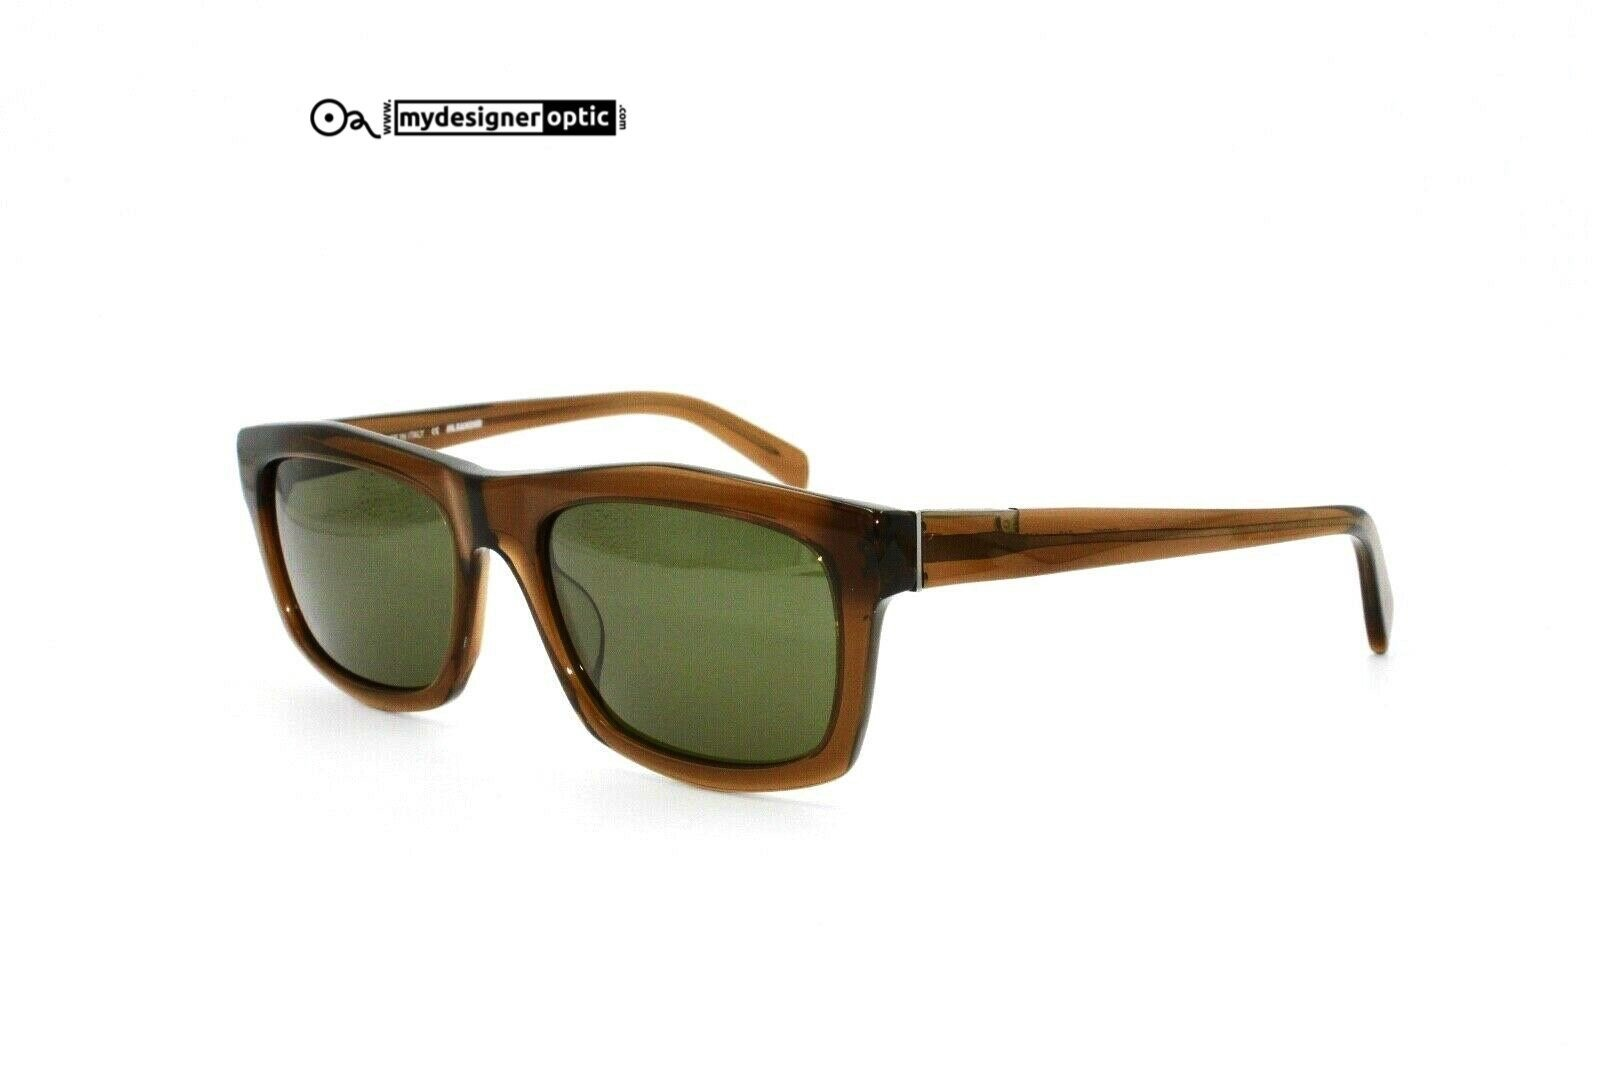 Jil Sander Sunglasses JS620S 210 140 Made in Italy - Mydesigneroptic